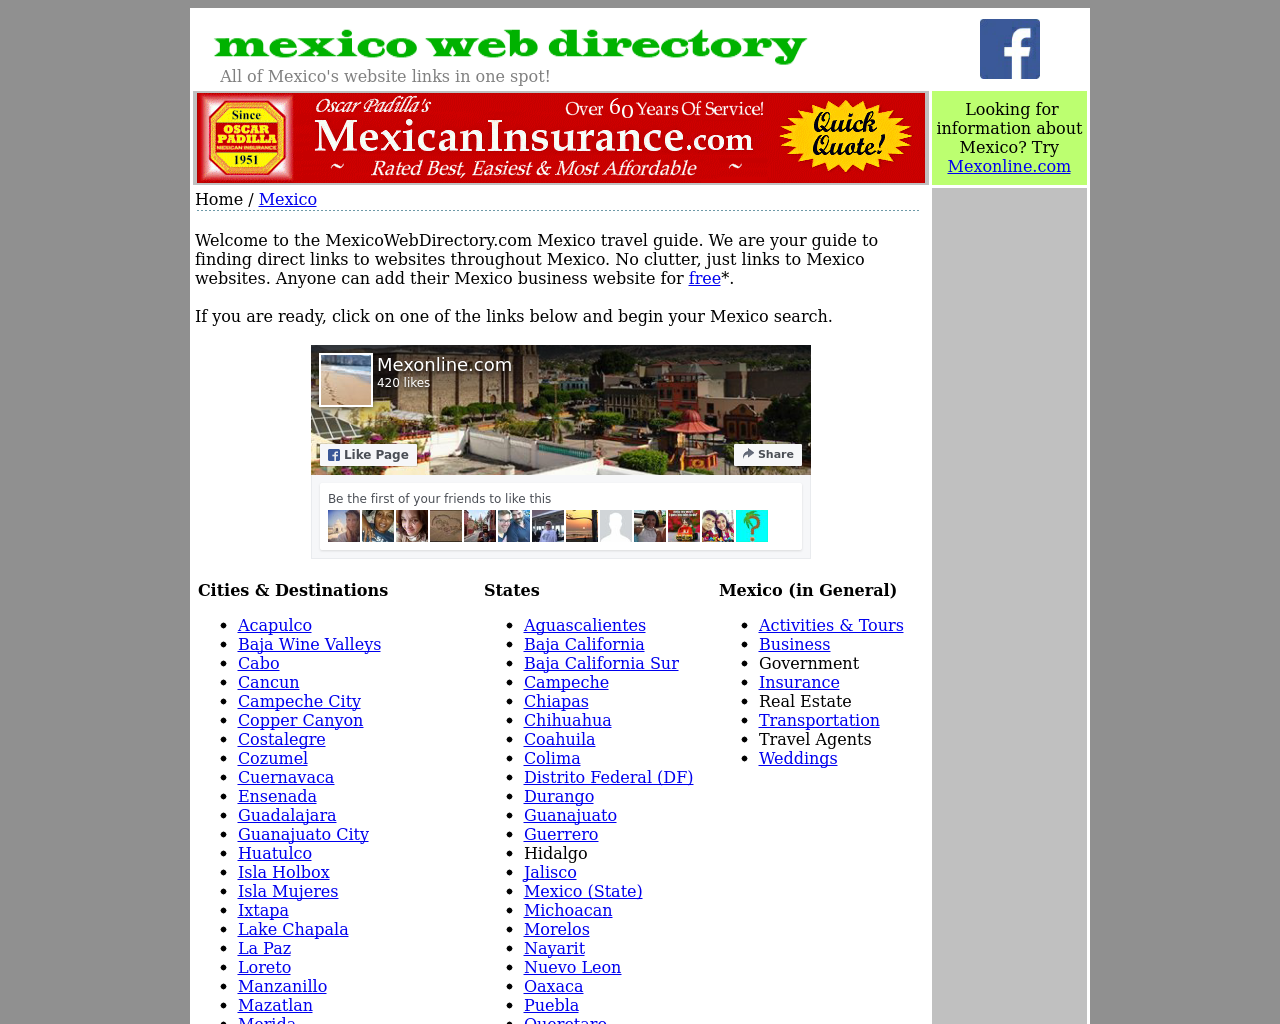 Mexico-Web-Directory-Advertising-Reviews-Pricing